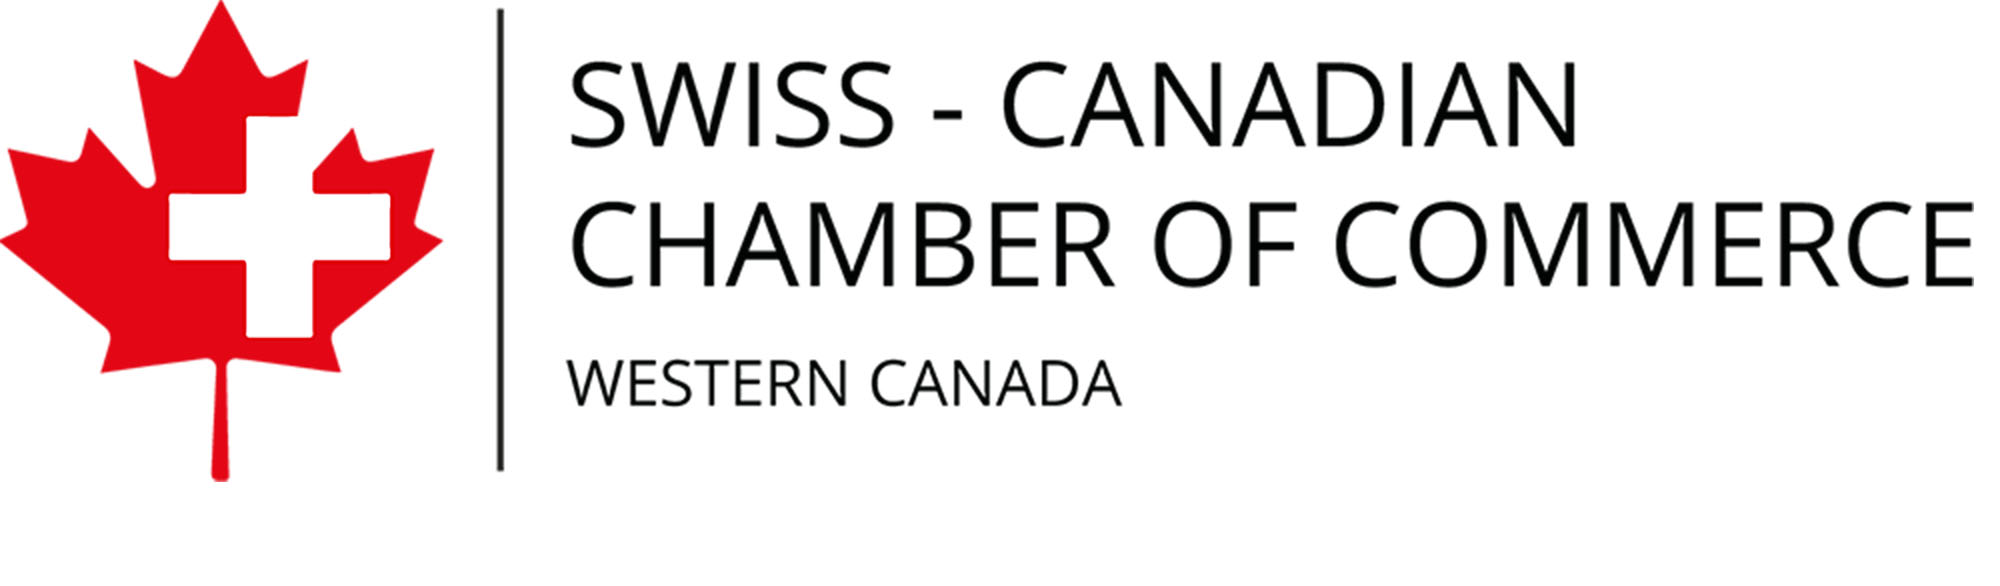 Swiss Canadian Chamber of Commerce